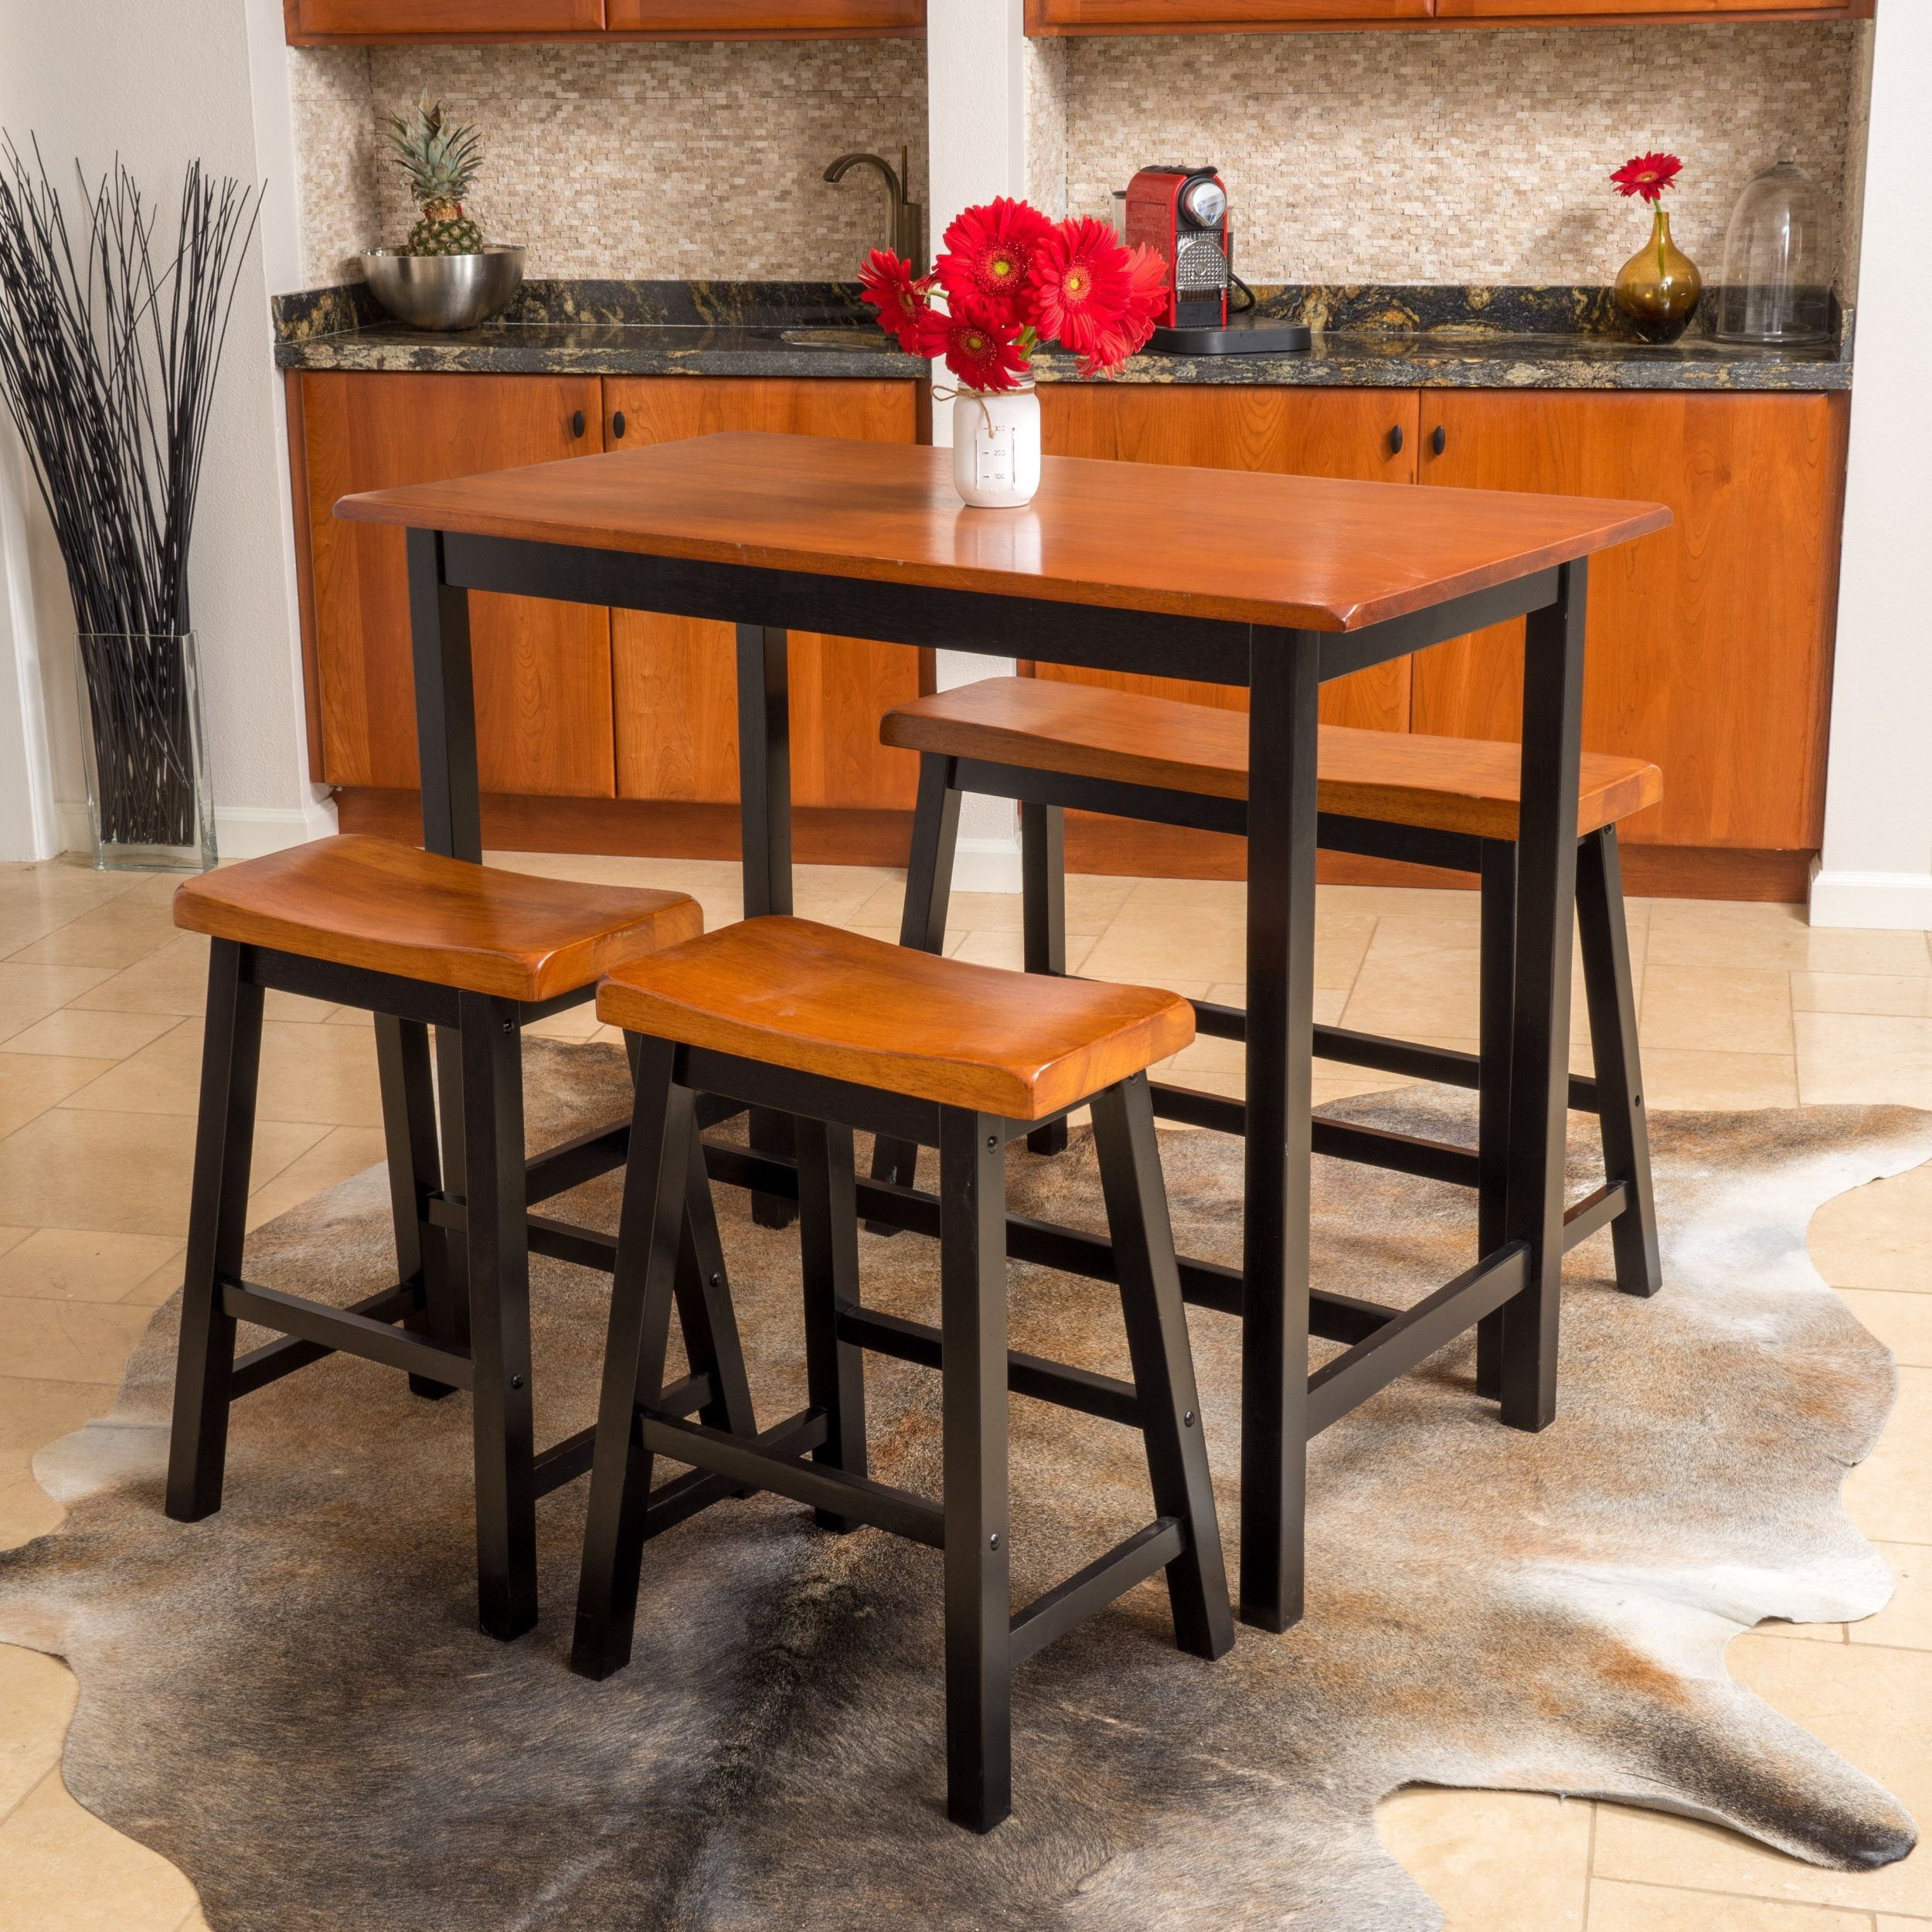 300 Dining Room Sets Find the dining room table and chair set